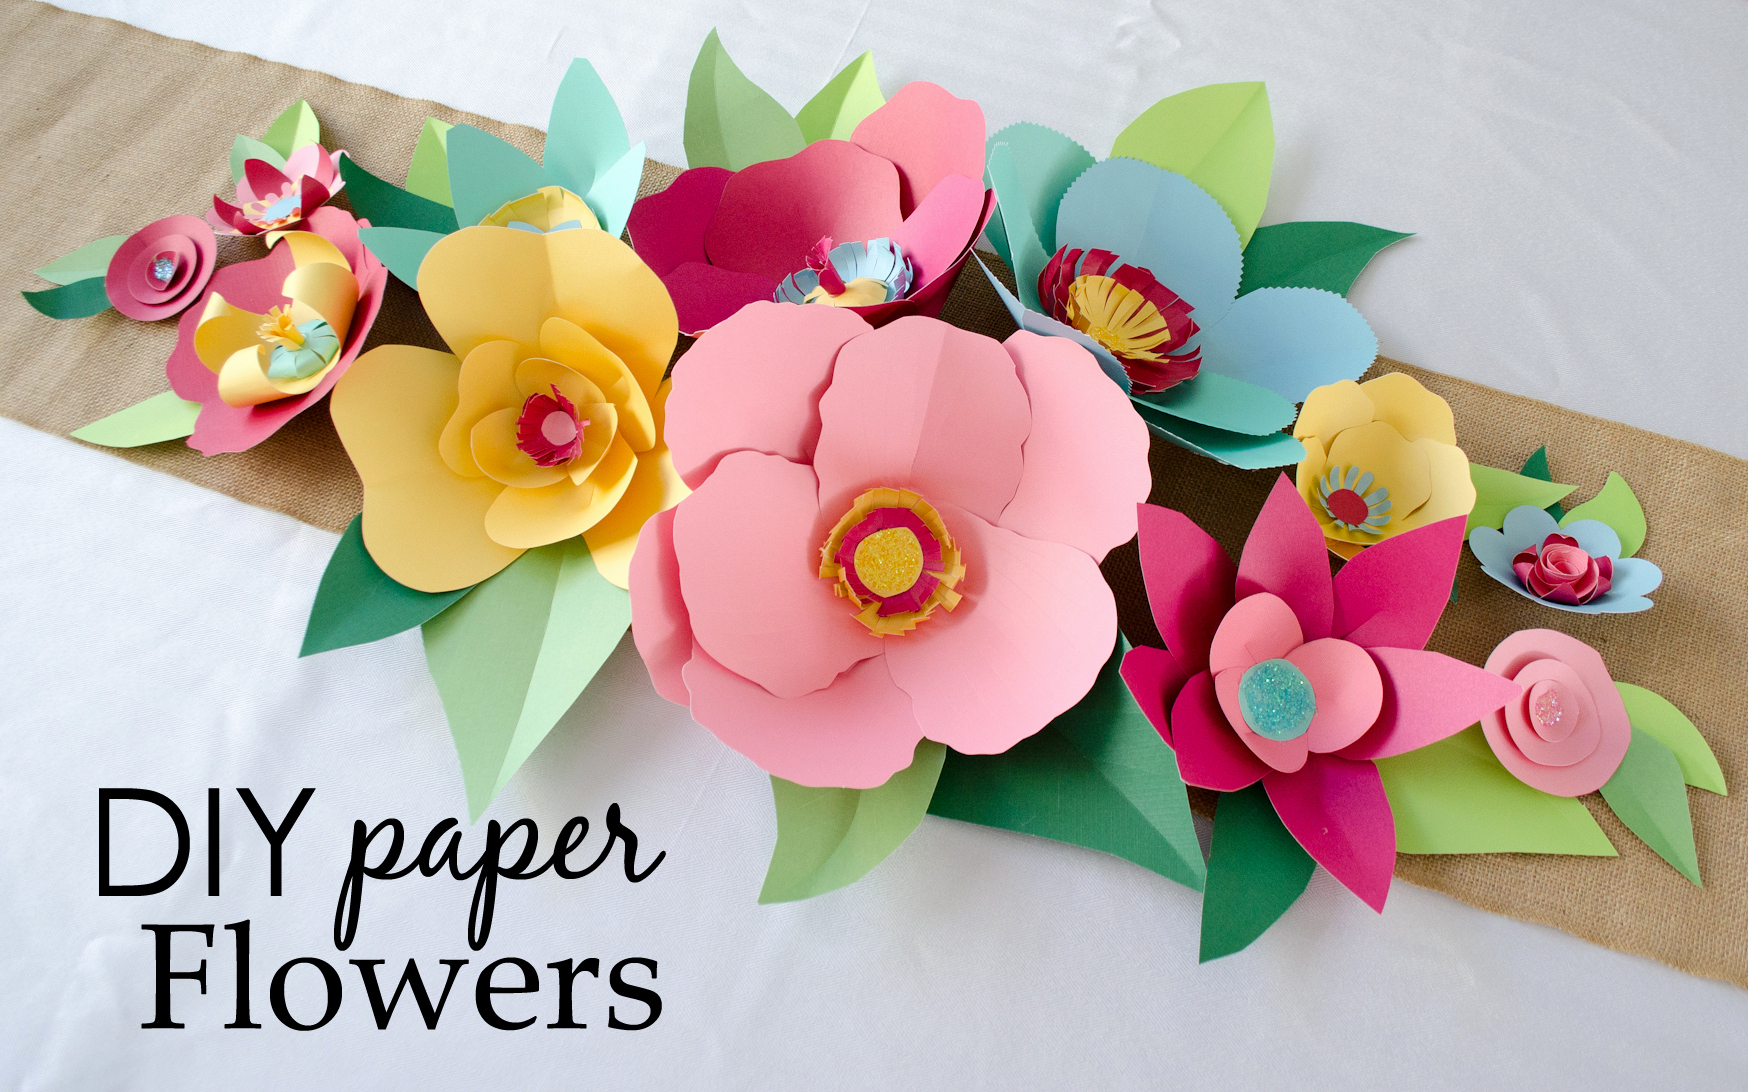 Printable Flower Template Cut Out Inspirational Diy Hand Cut Paper Flowers Project Nursery